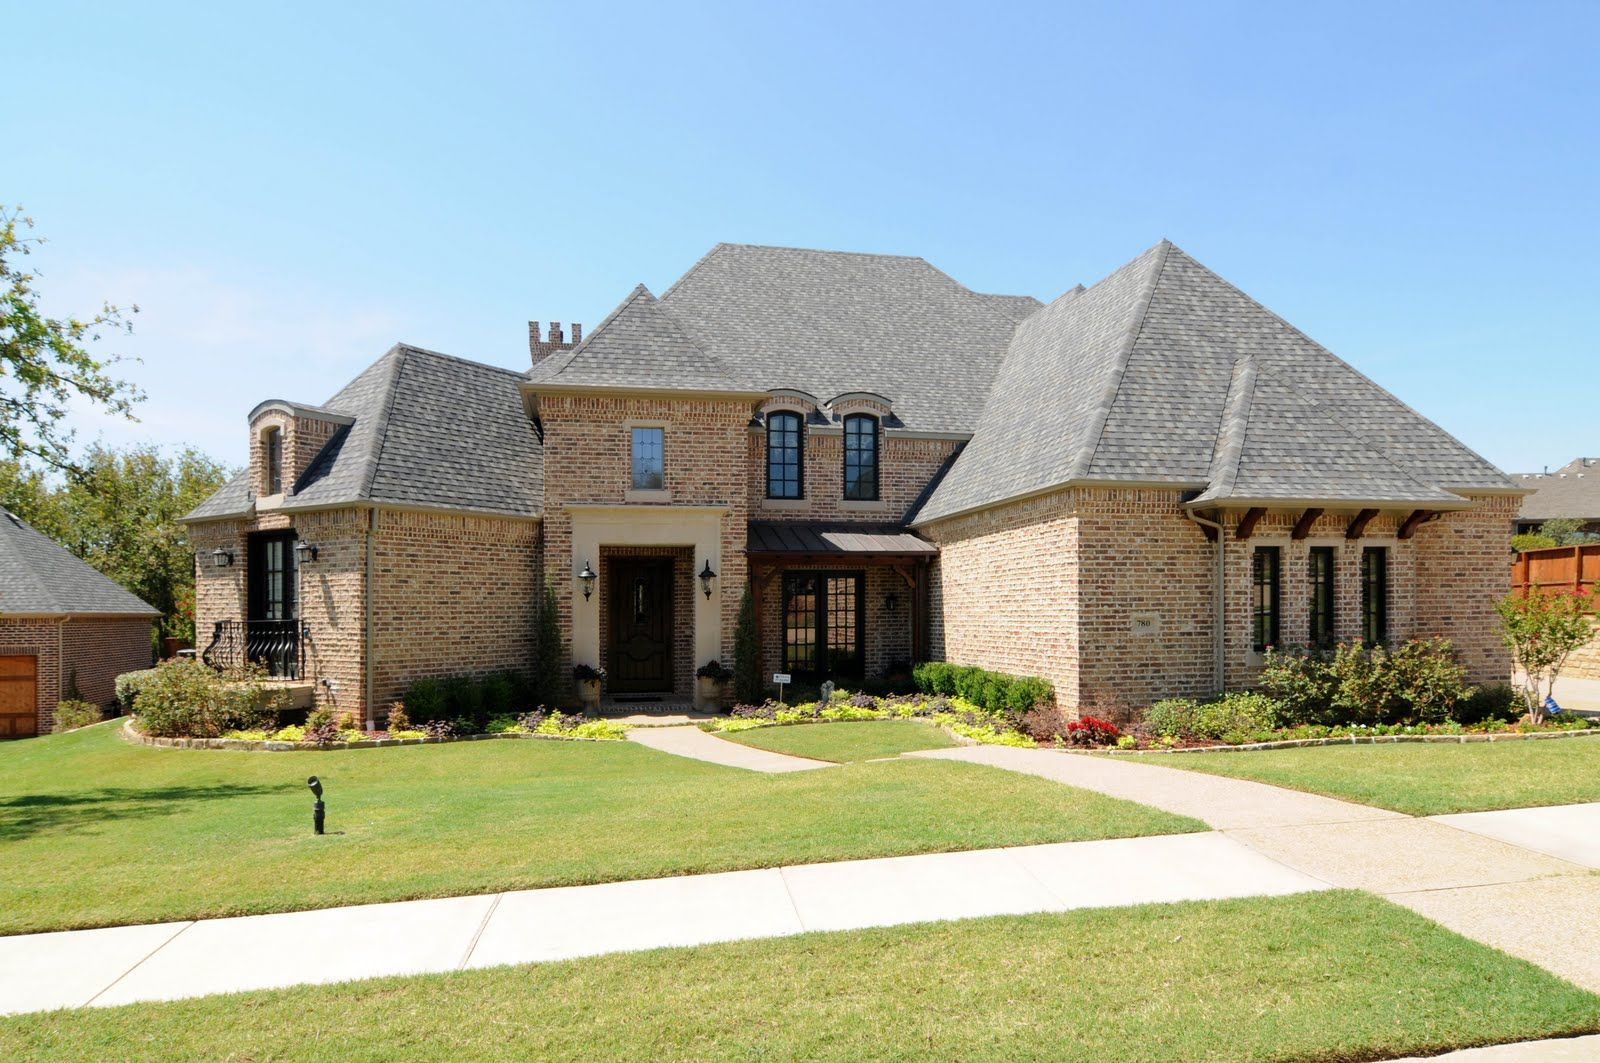 Luxury Homes For Sale | Homes For Sale In Lantana, Texas: Luxury Properties